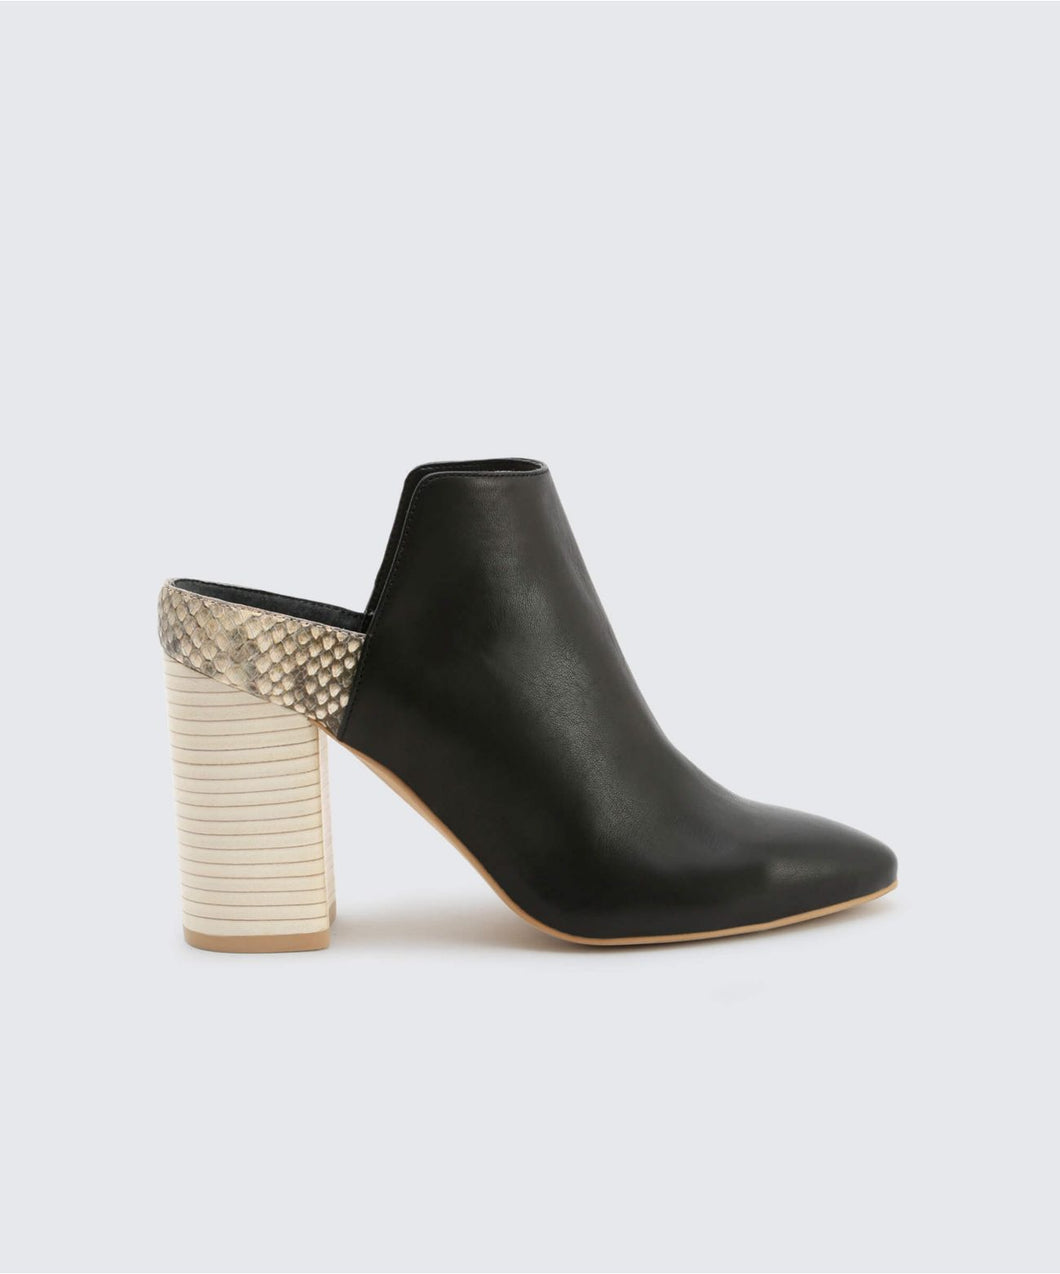 RENLY BOOTIES ONYX -   Dolce Vita